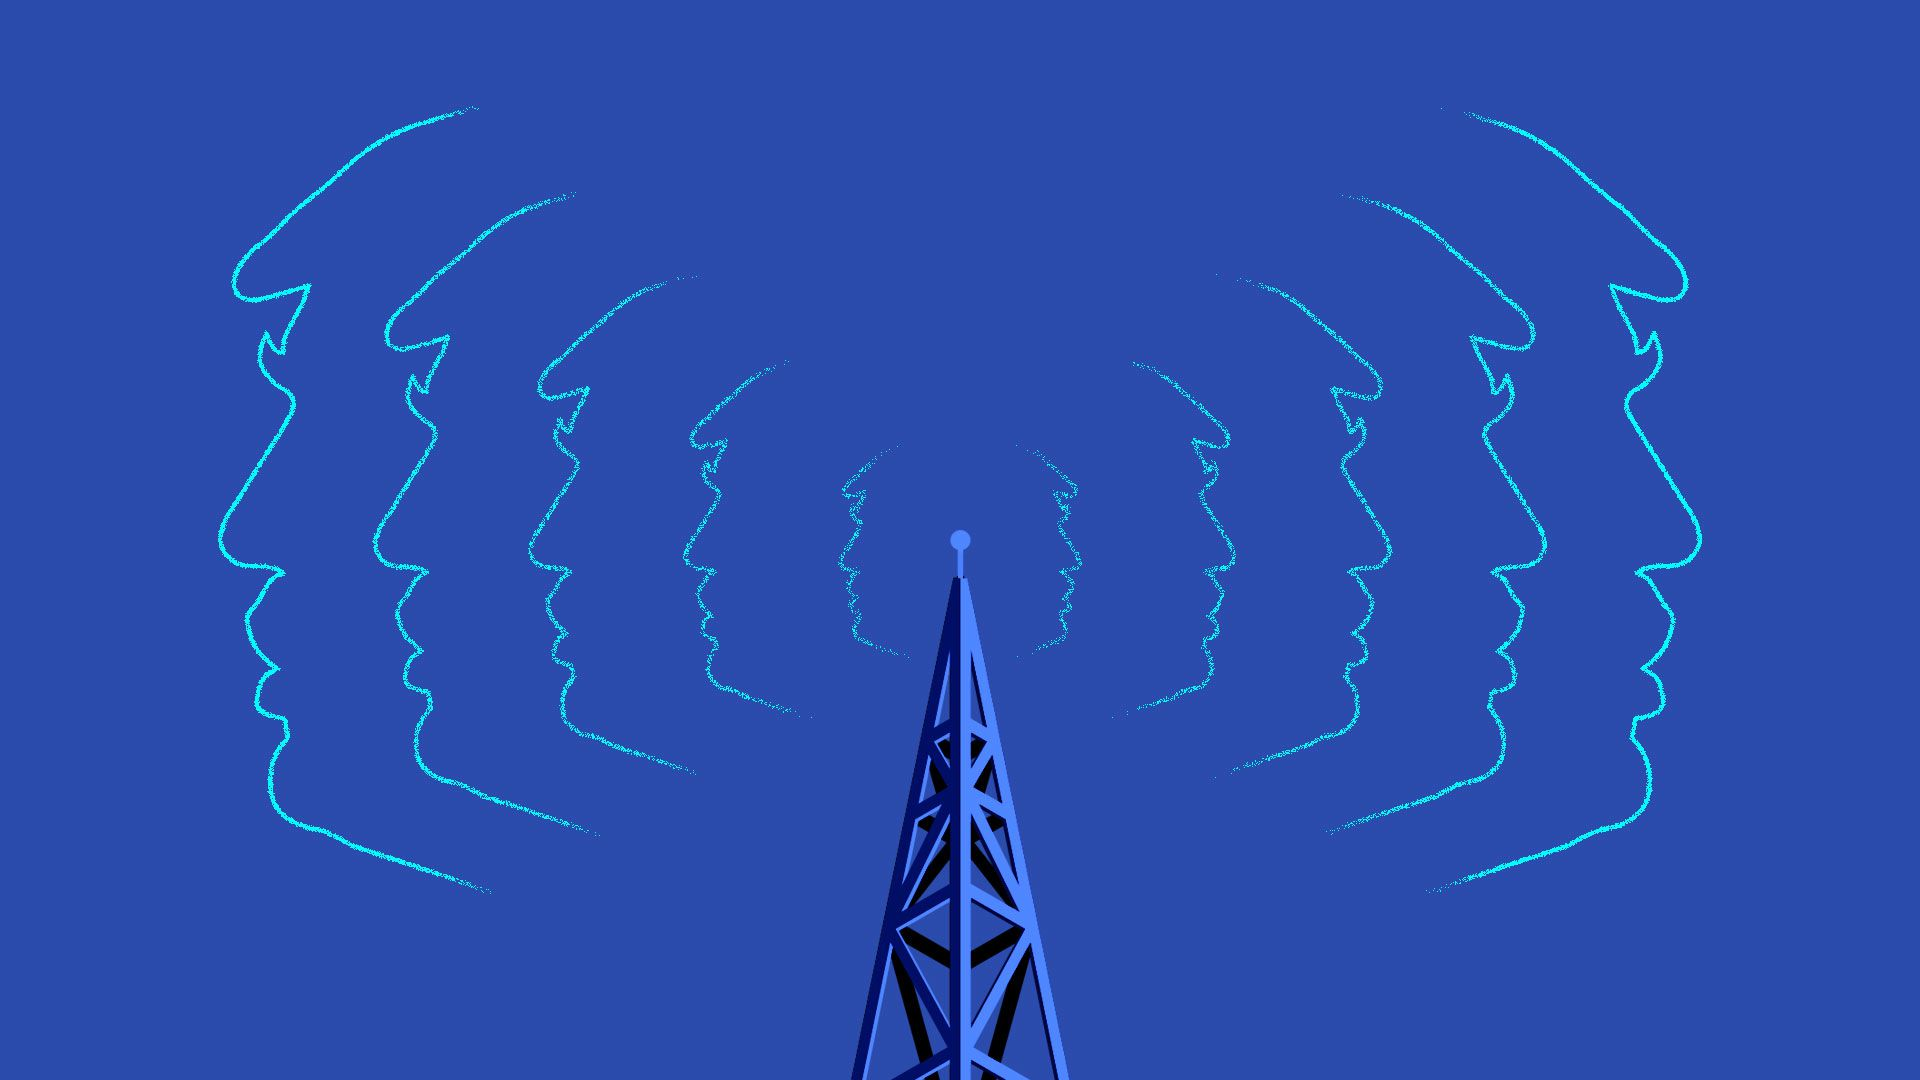 A radio tower emanating radio waves in the shape of Donald Trump's profile